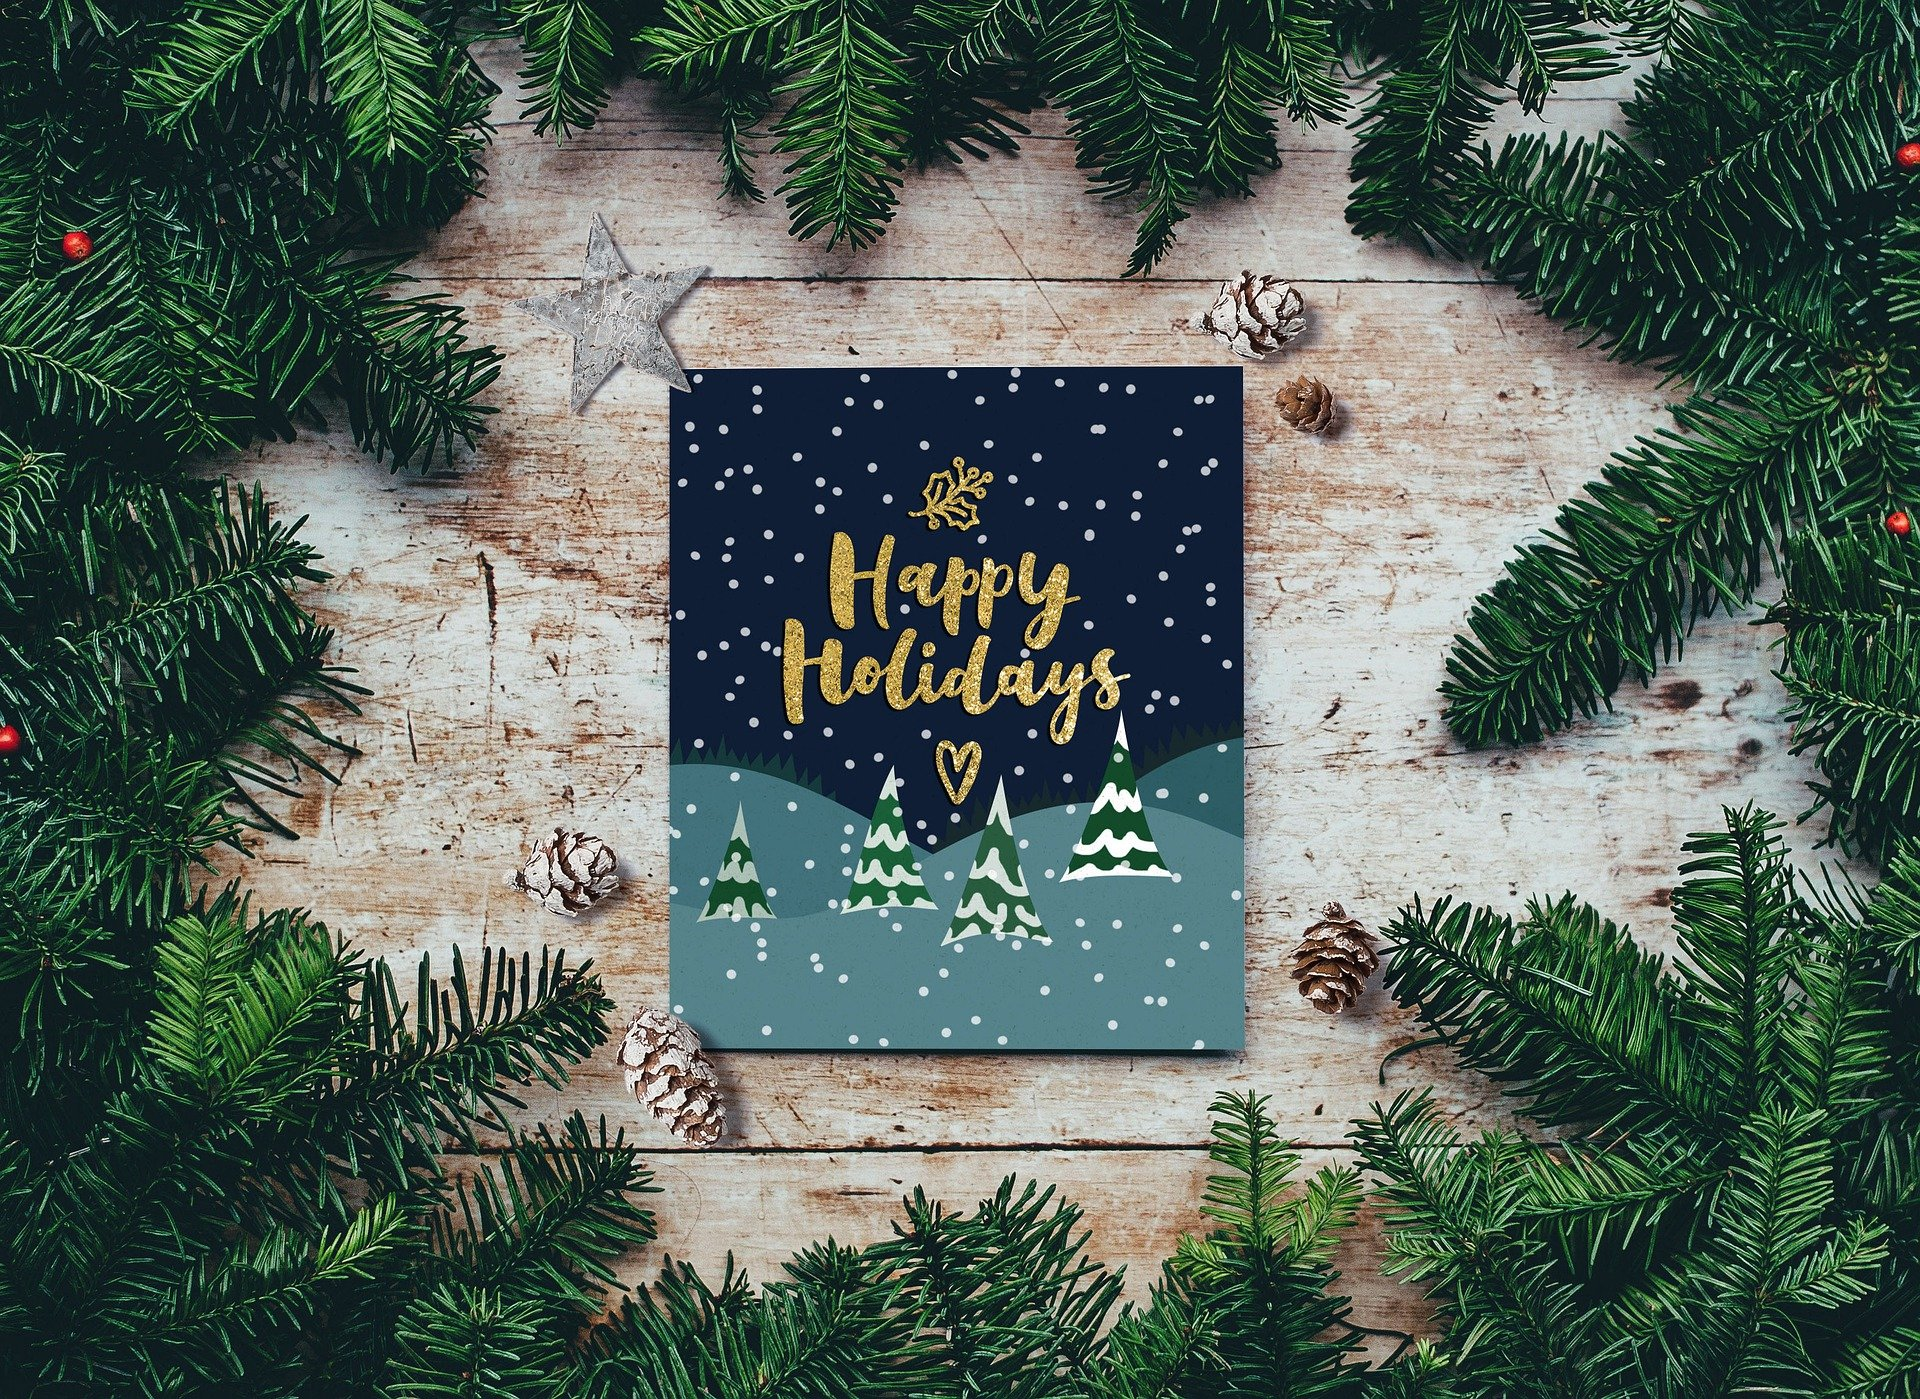 Photo of a holiday card with text reading Happy Holidays. The card depicts snowy trees. The card is surrounded by a wreath.